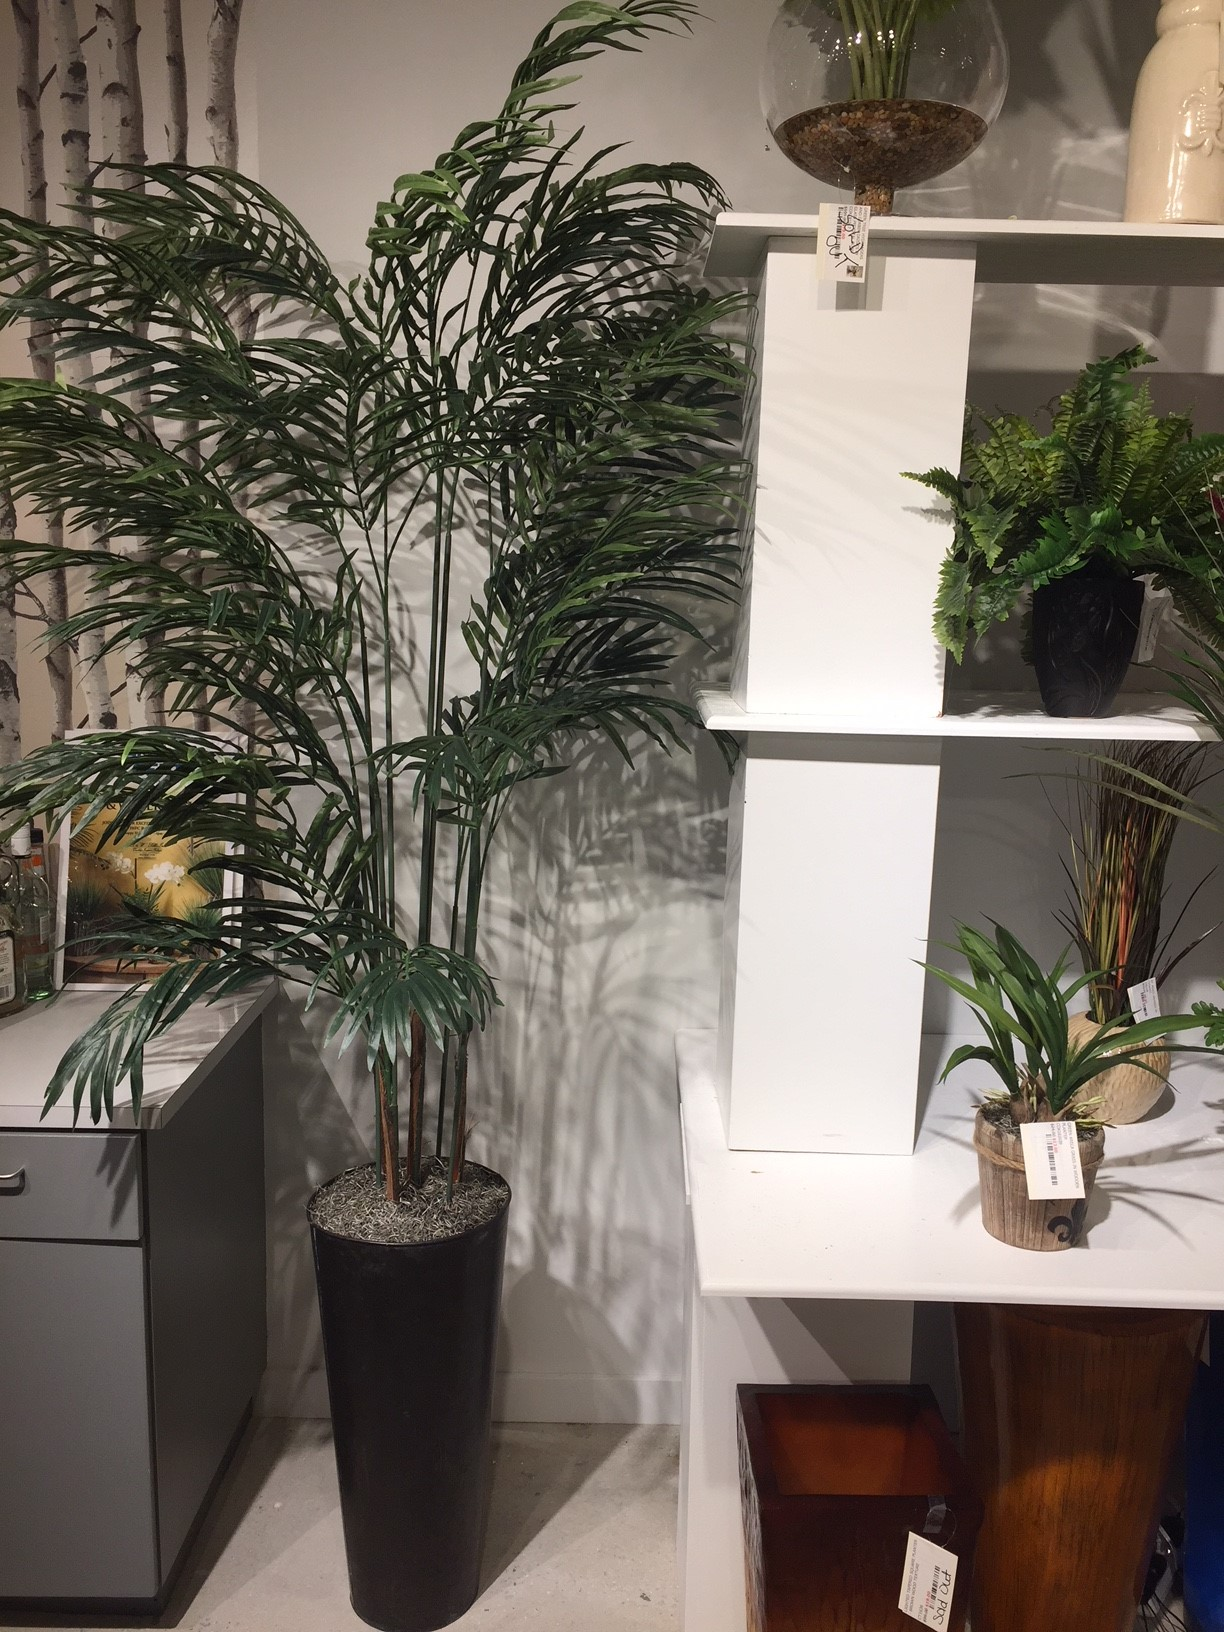 D Amp W Silks 7 Areca Palm Tree In Round Metal Planter